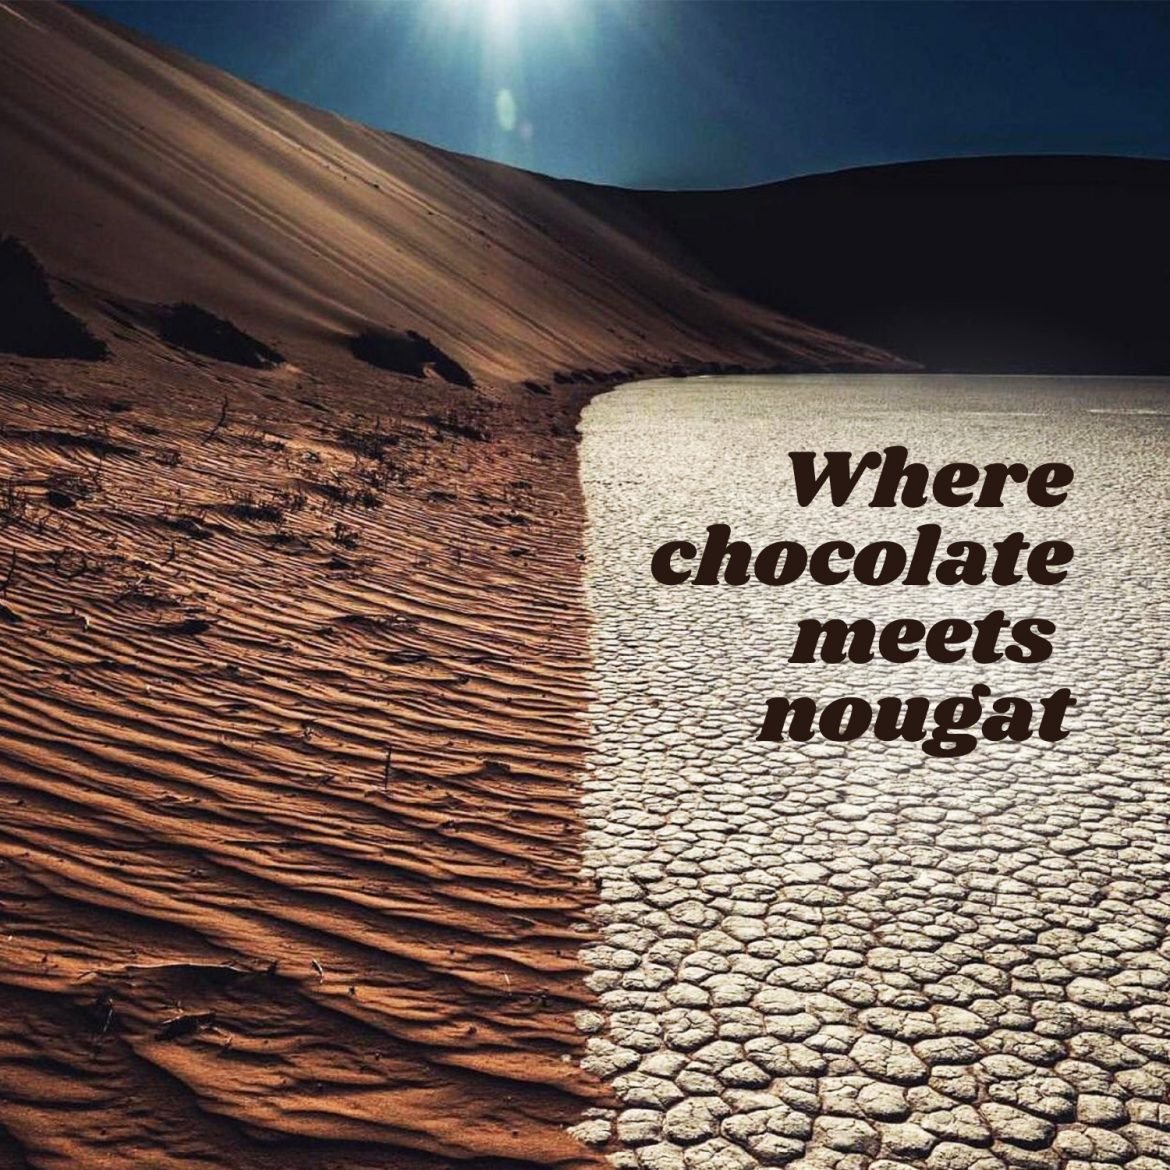 Where chocolate meets nougat